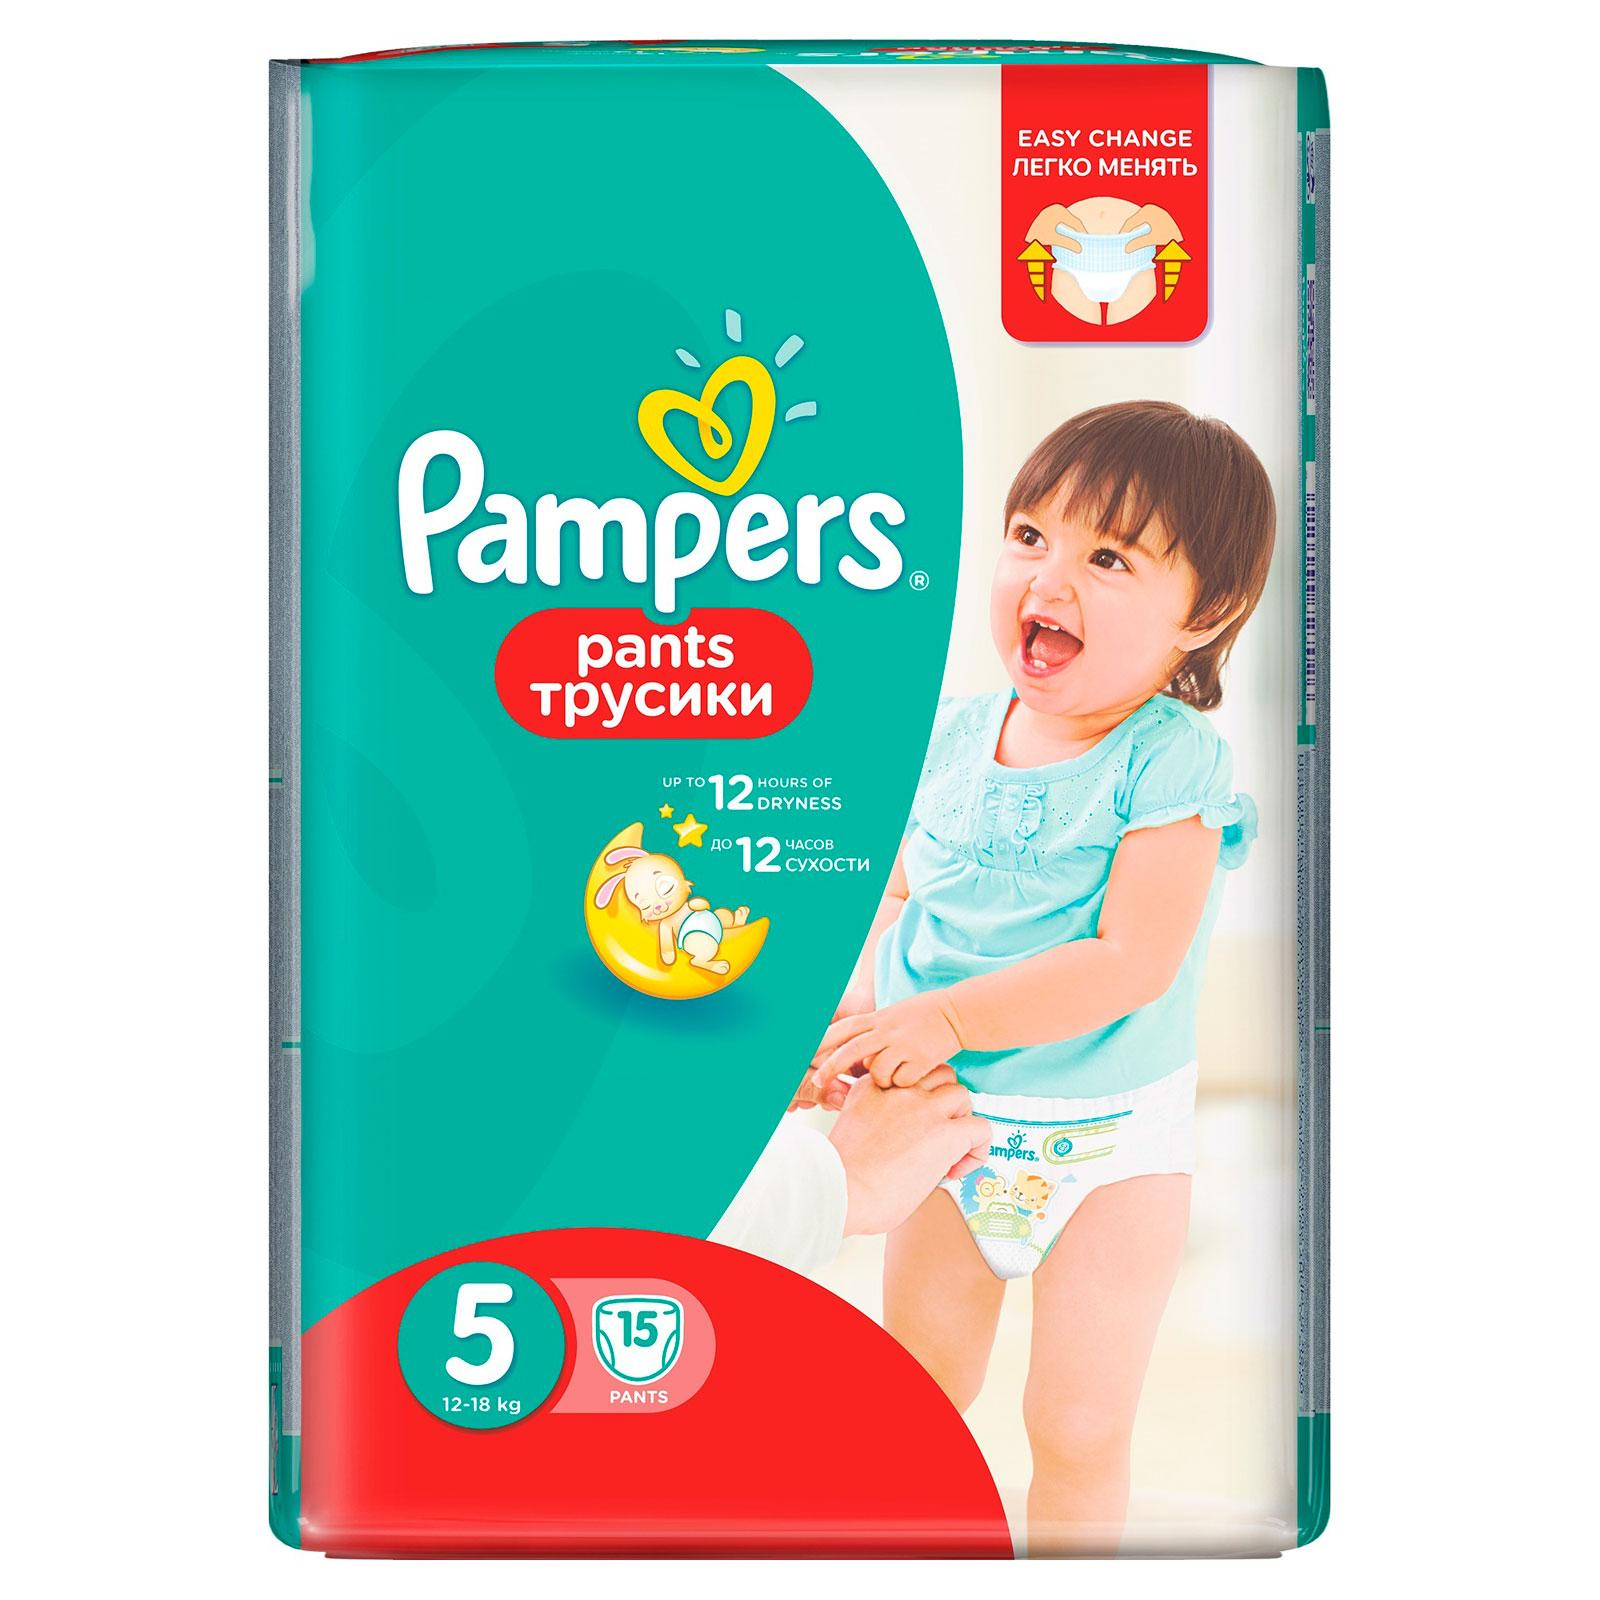 Трусики Pampers Pants 5 (12-18 кг) - 15 шт